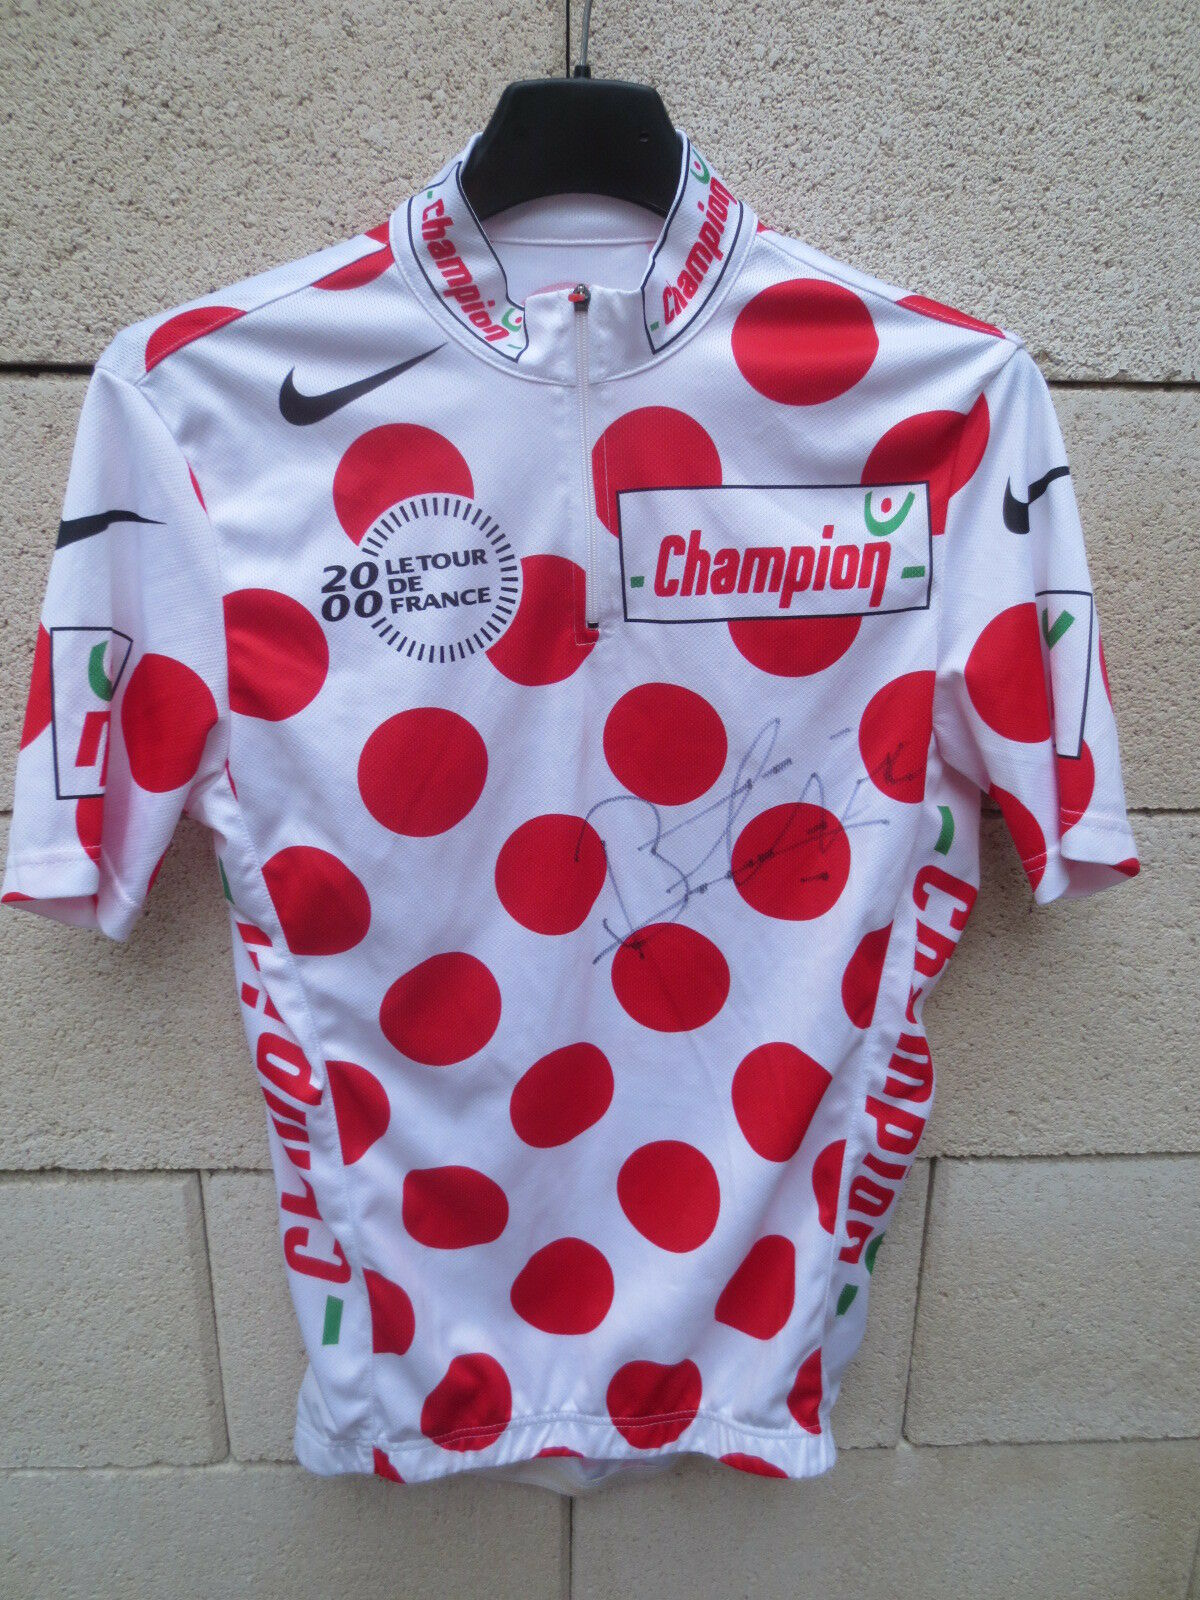 Cycling polka dot jersey tour de france 2000 autographed  botero throwdown shirt s  sale with high discount